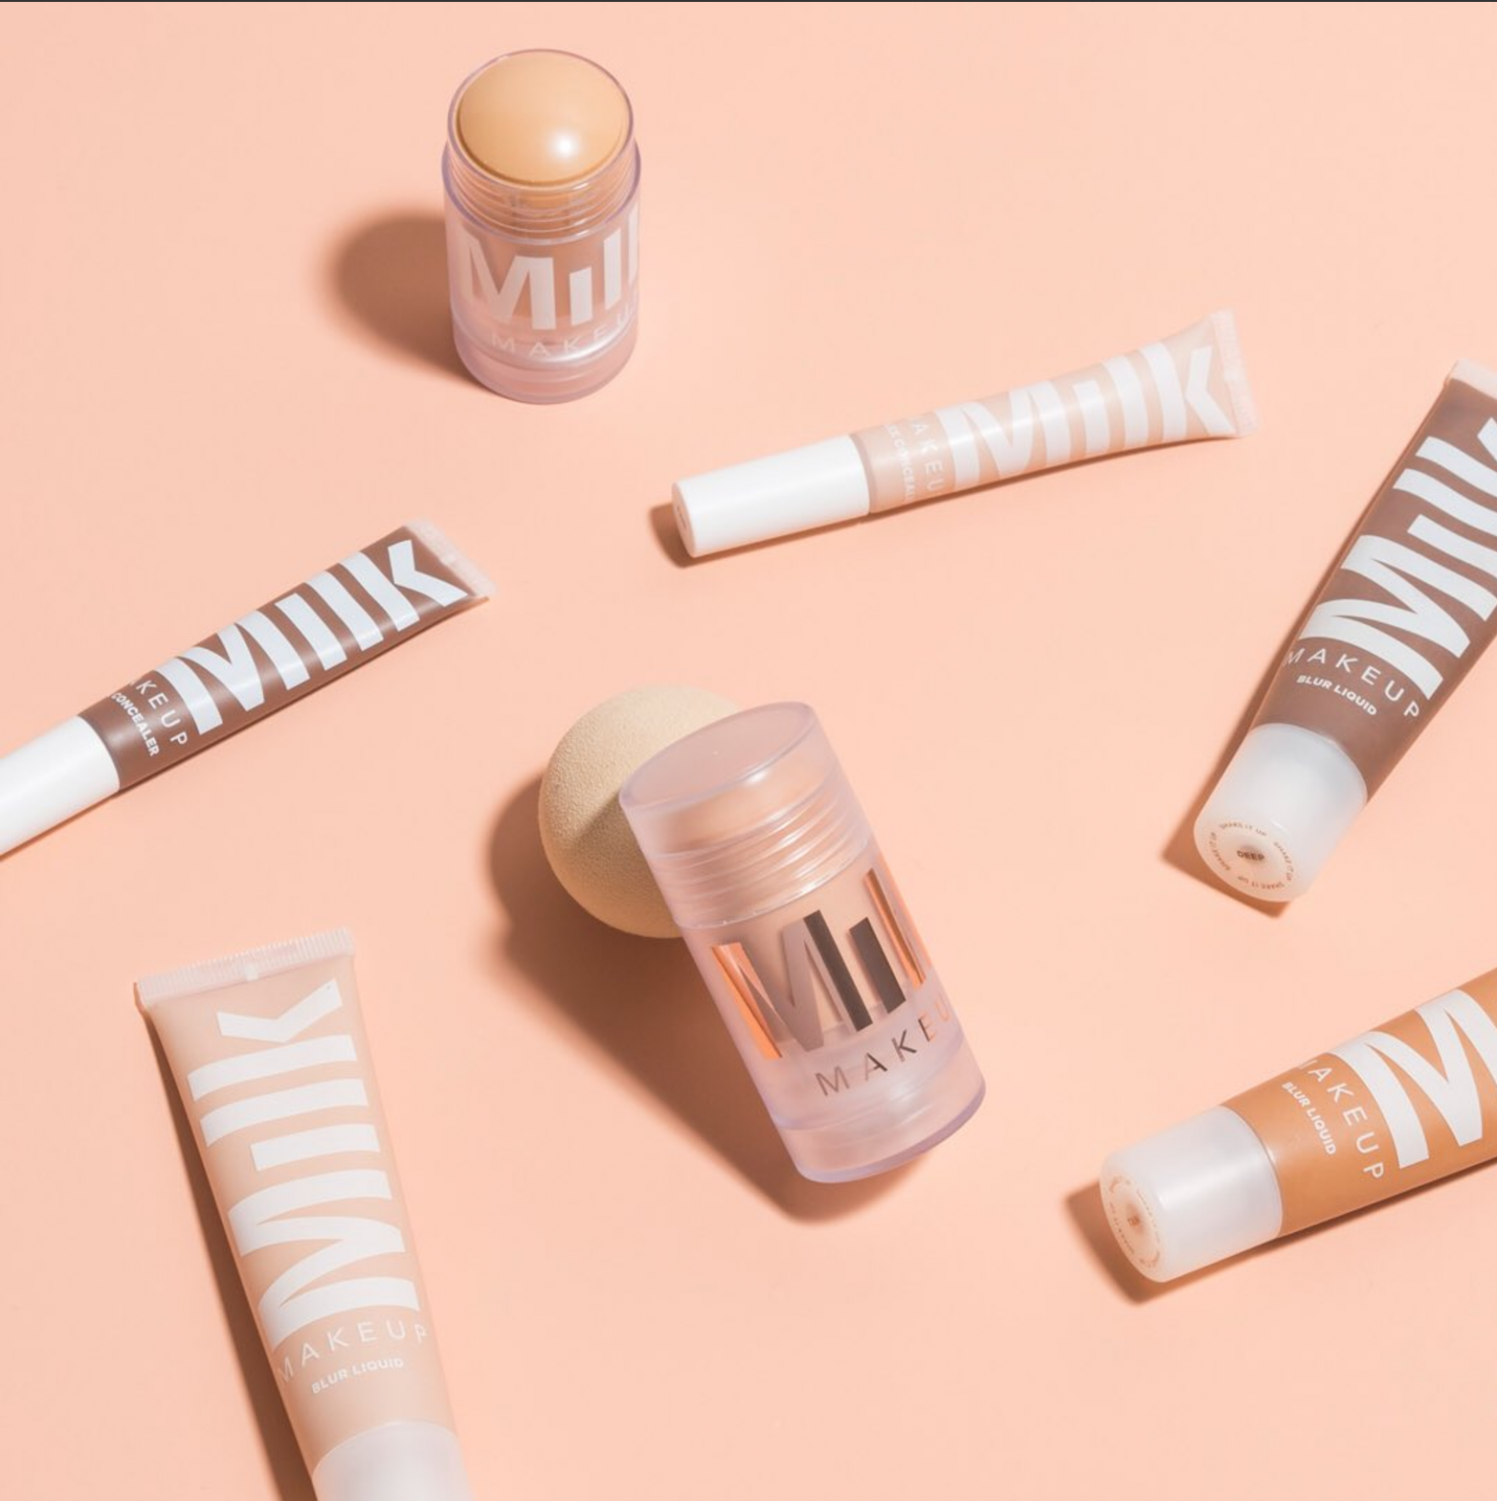 Milk Makeup offers foundations and creams for the new dewy makeup trend.